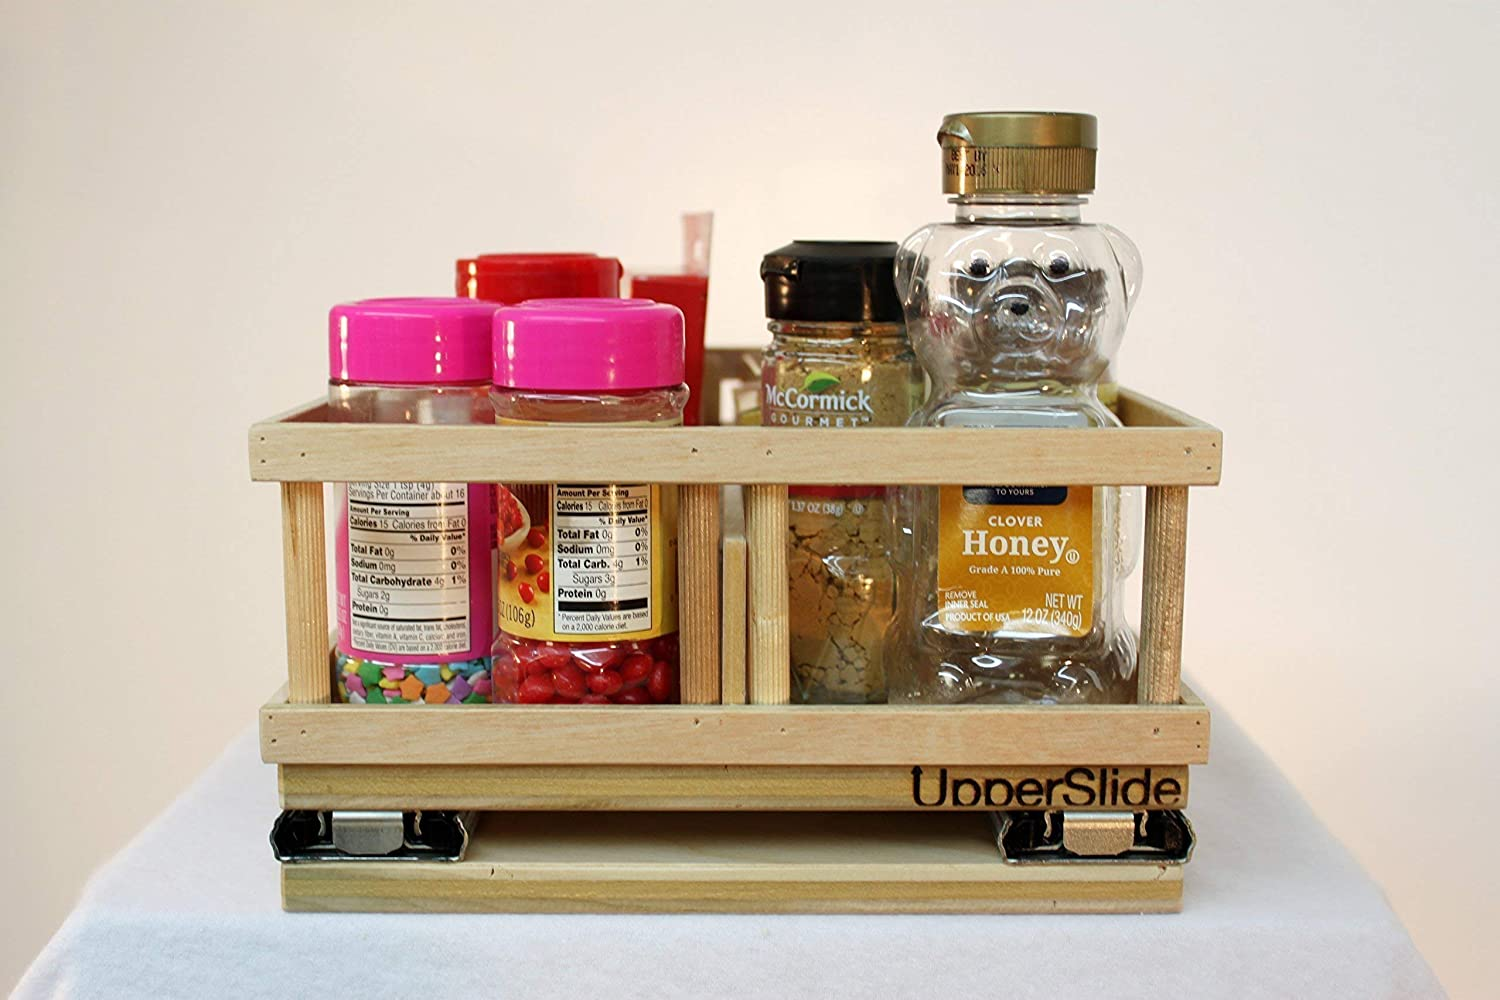 UpperSlide Cabinet Caddies Small Spice Rack Pull Out Caddy Upper Cabinet Storage fitting most 12 inch cabinets (US 303S) FREE SHIPPING